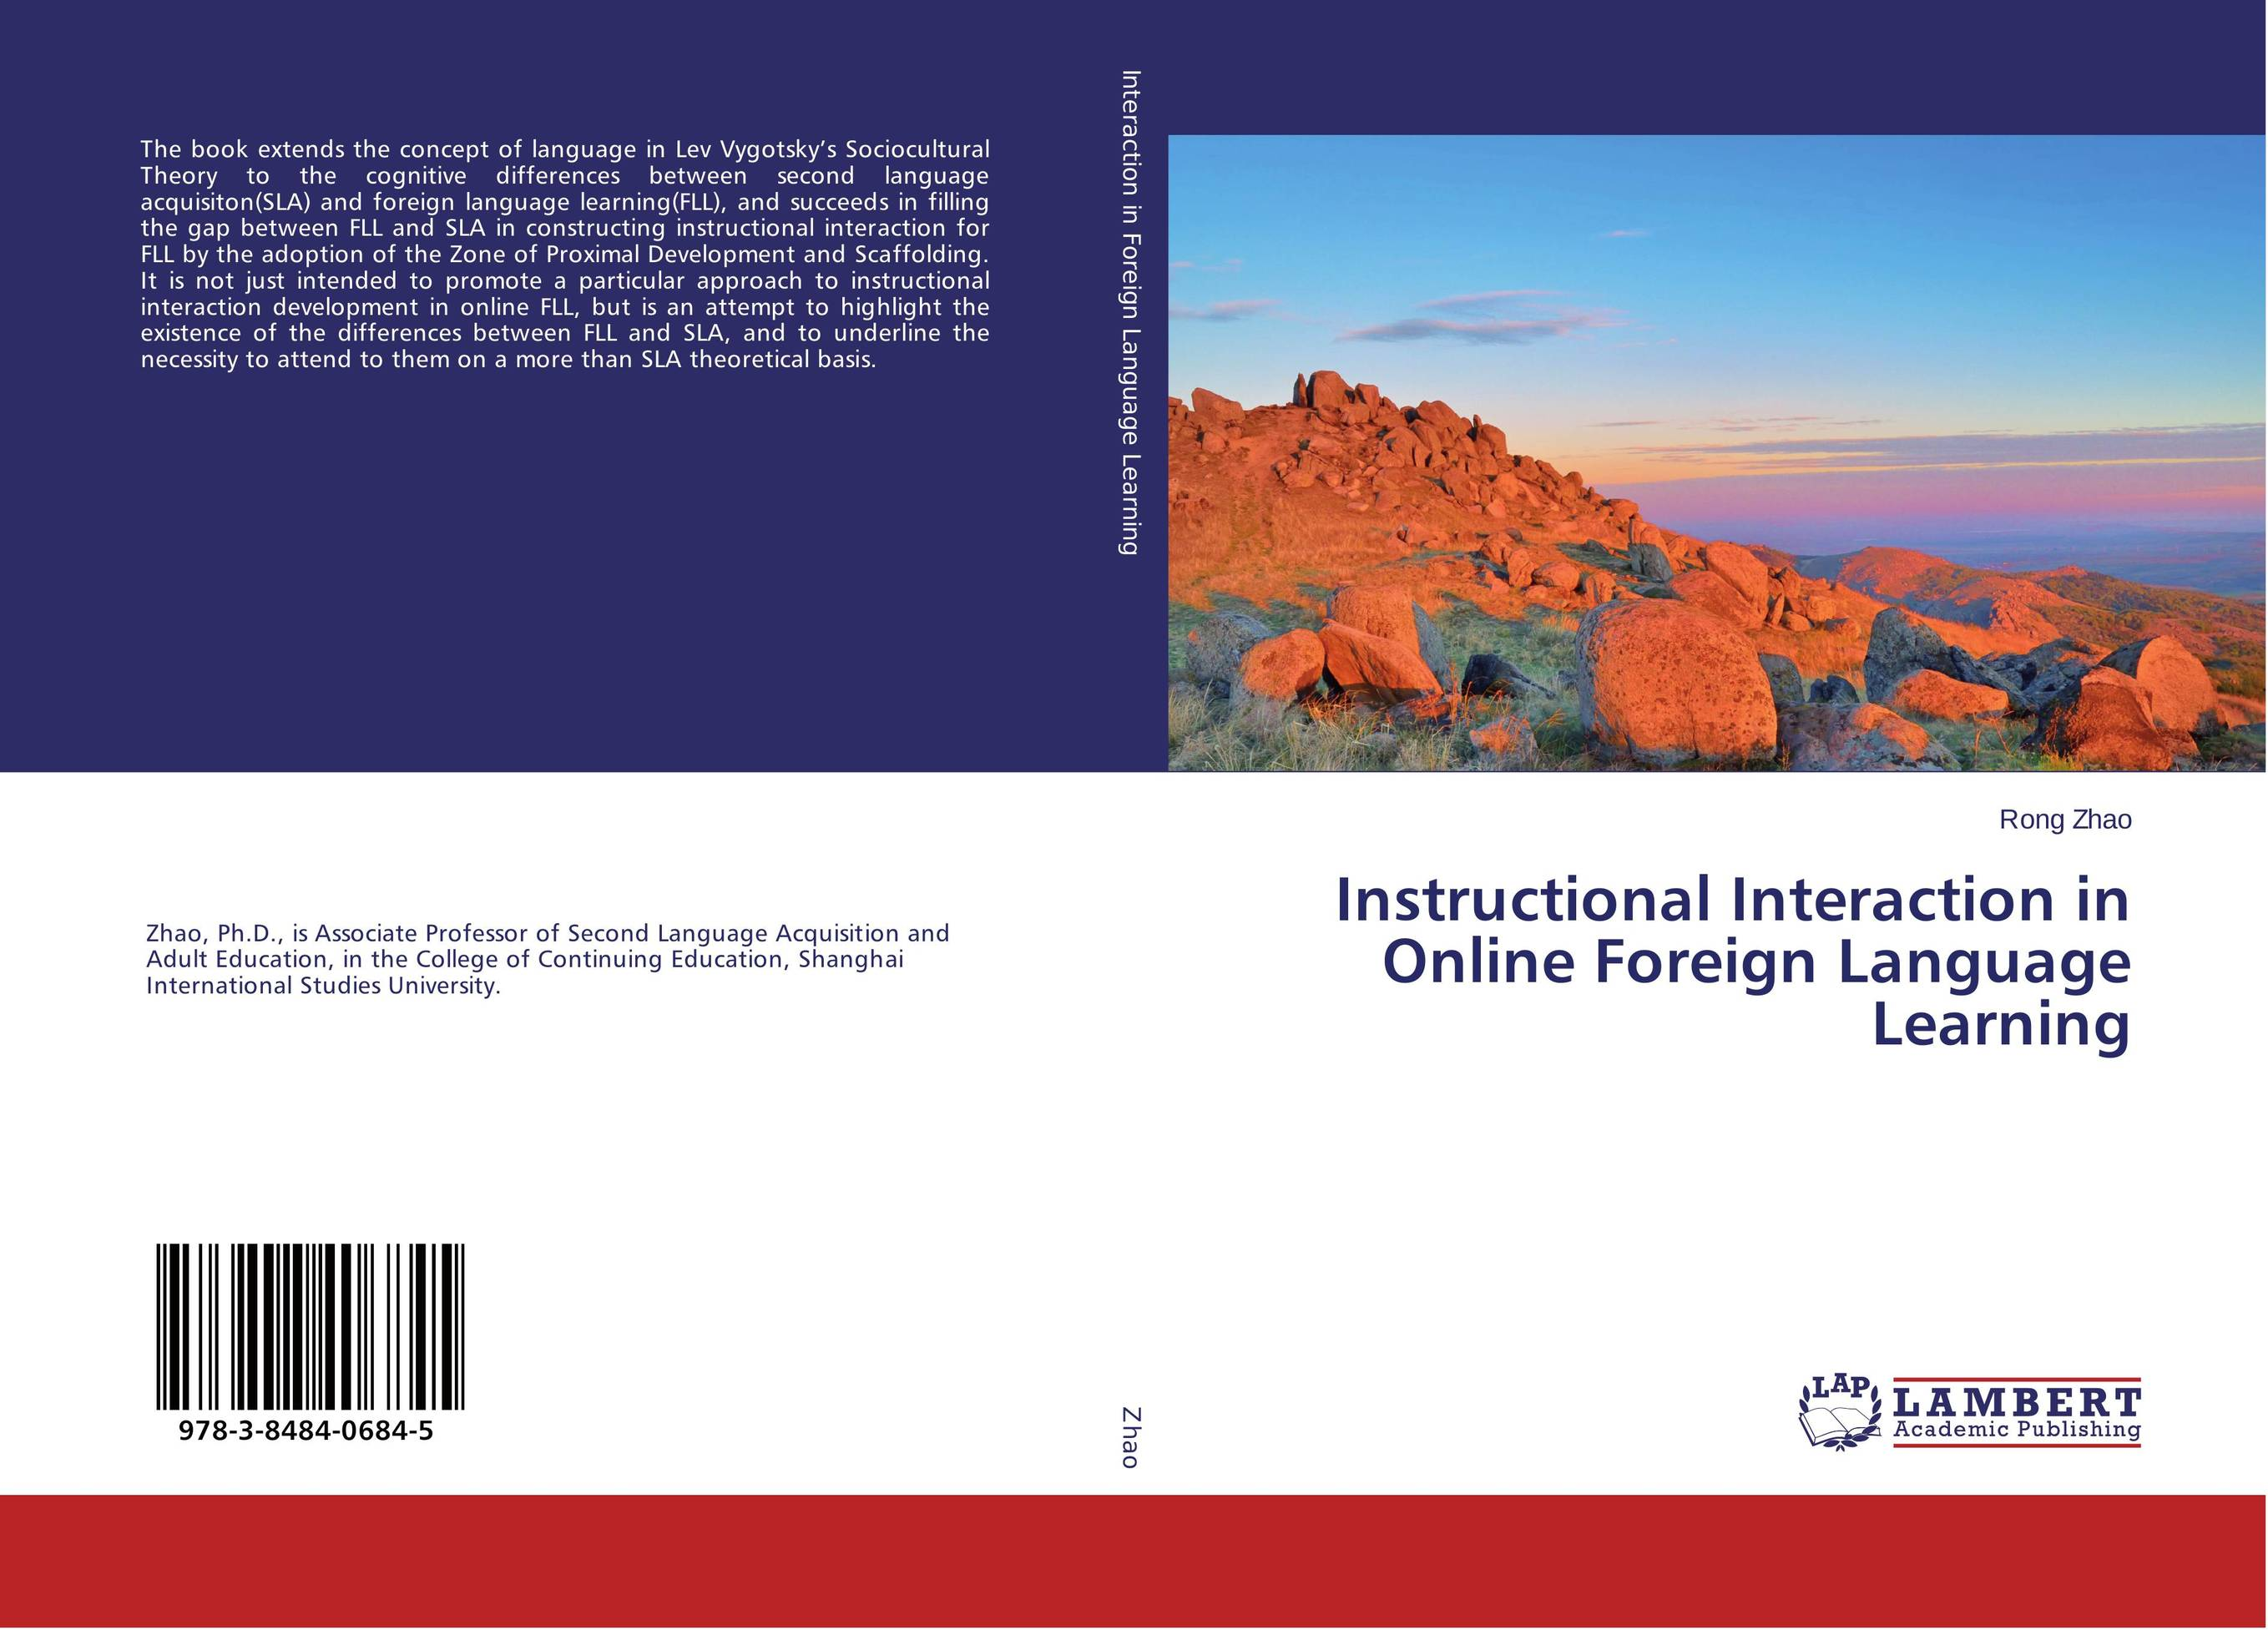 Instructional Interaction in Online Foreign Language Learning gap ga020ewrbo17